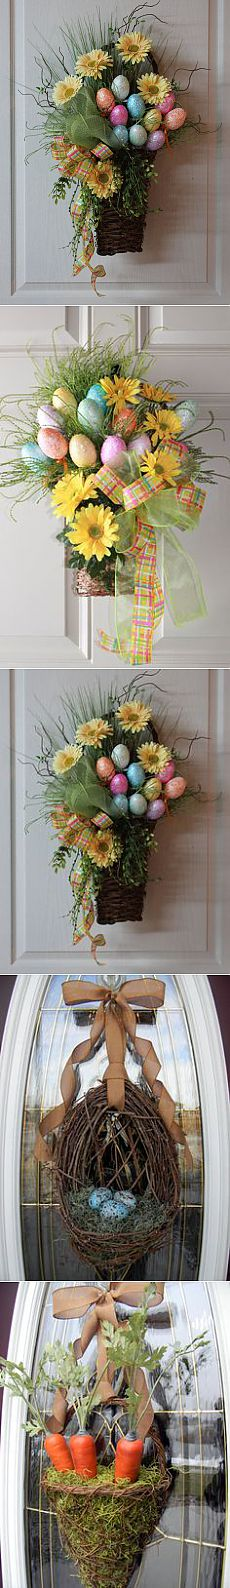 Lg. Easter Basket, Sparkly Colorful Easter Eggs, Yellow Daisies, Twigs, Vines, Grasses